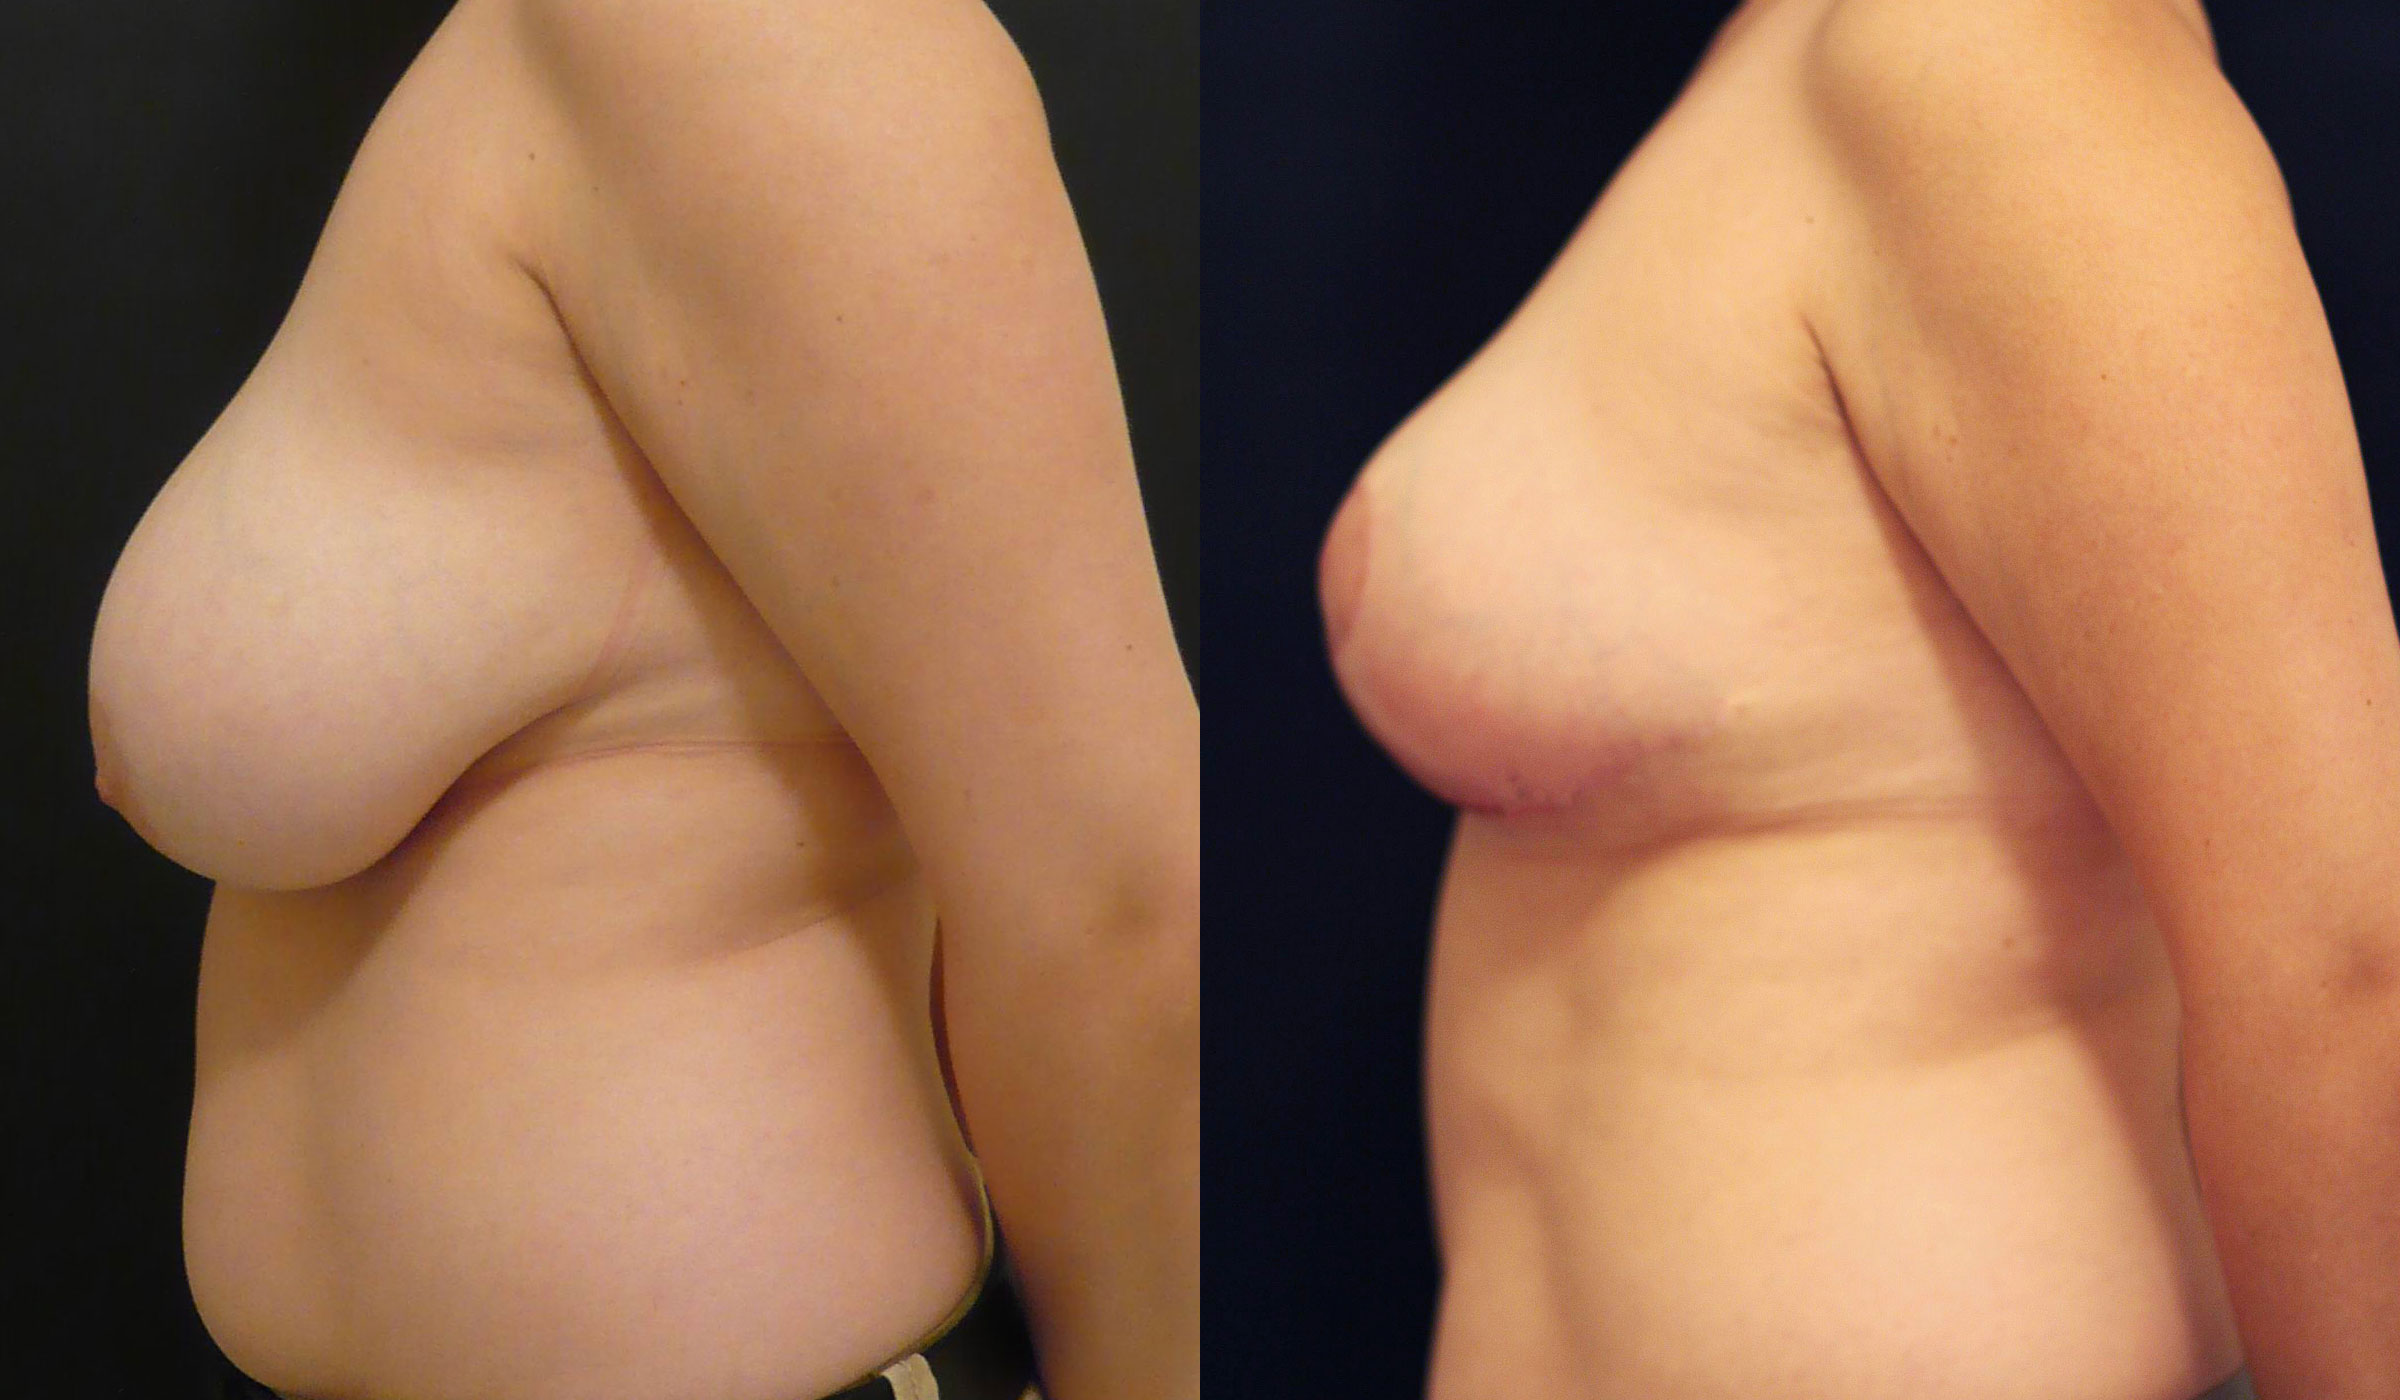 Breast Reduction Before & After Photo - Dr. Naidu